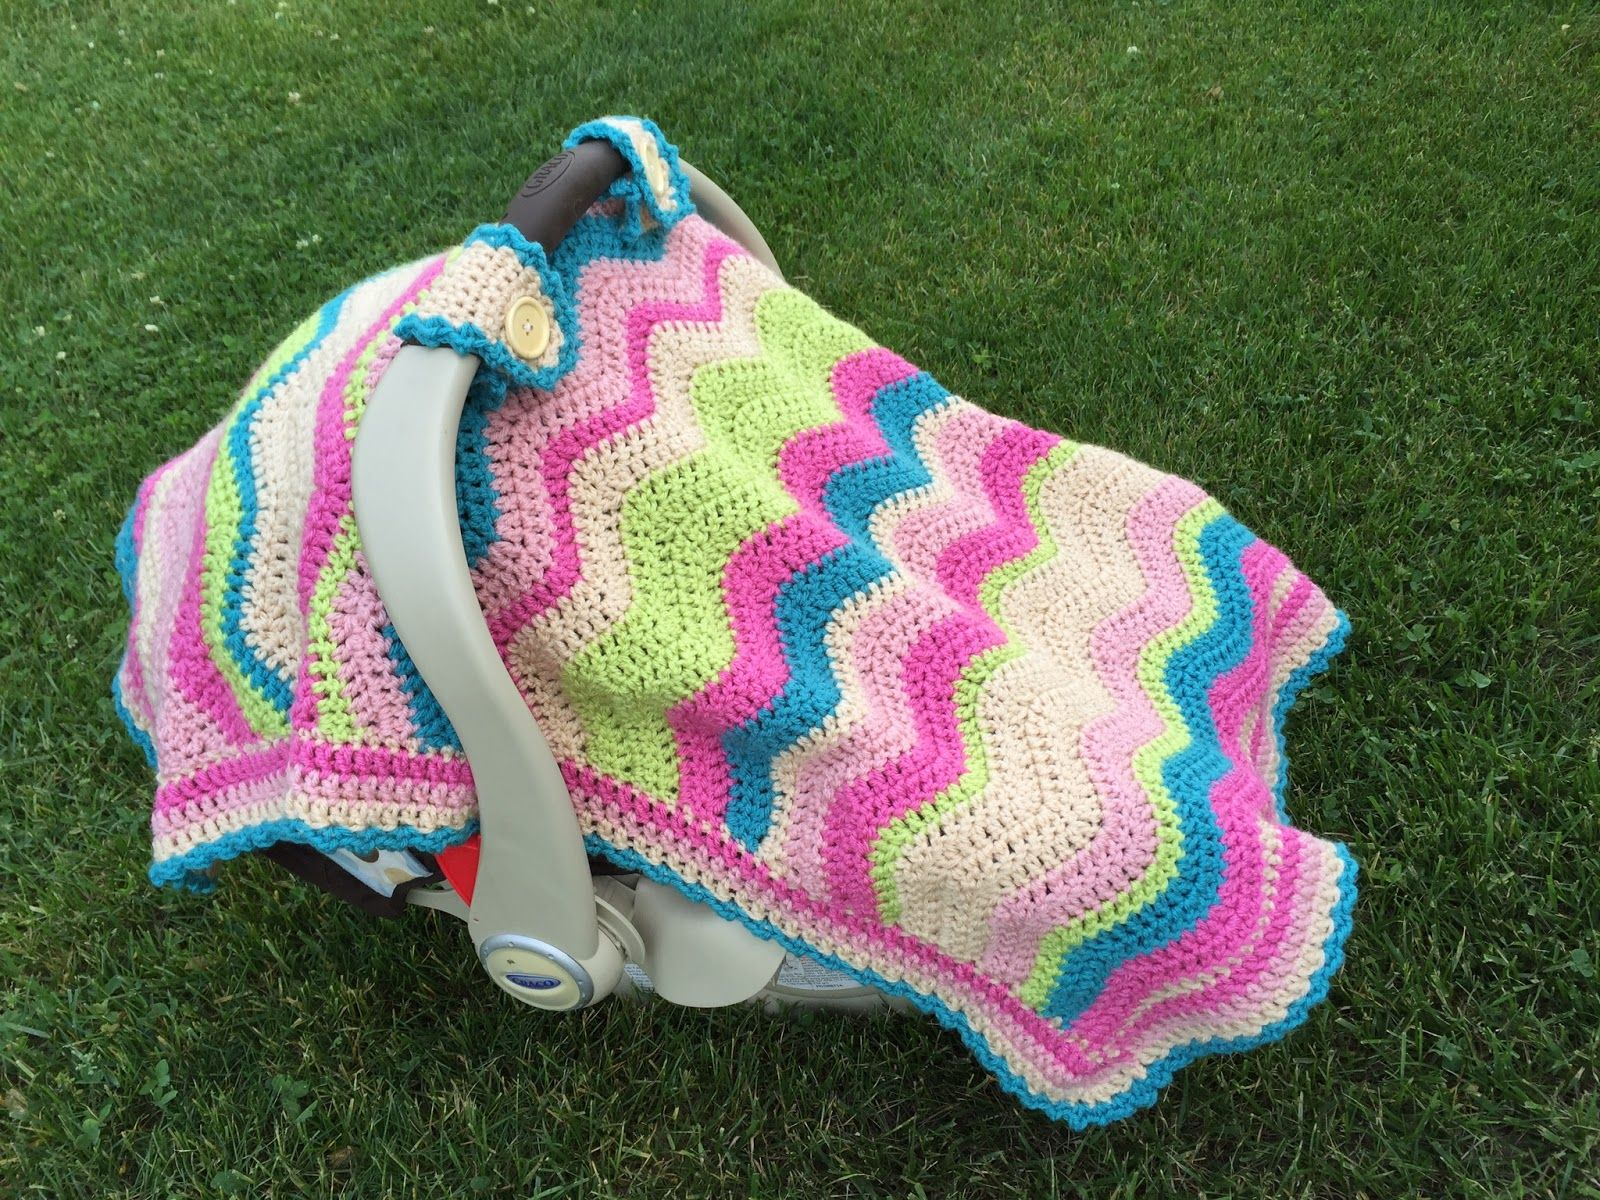 Crochet Baby Car Seat Cover with Pattern | Manta, Tejido y Bebe